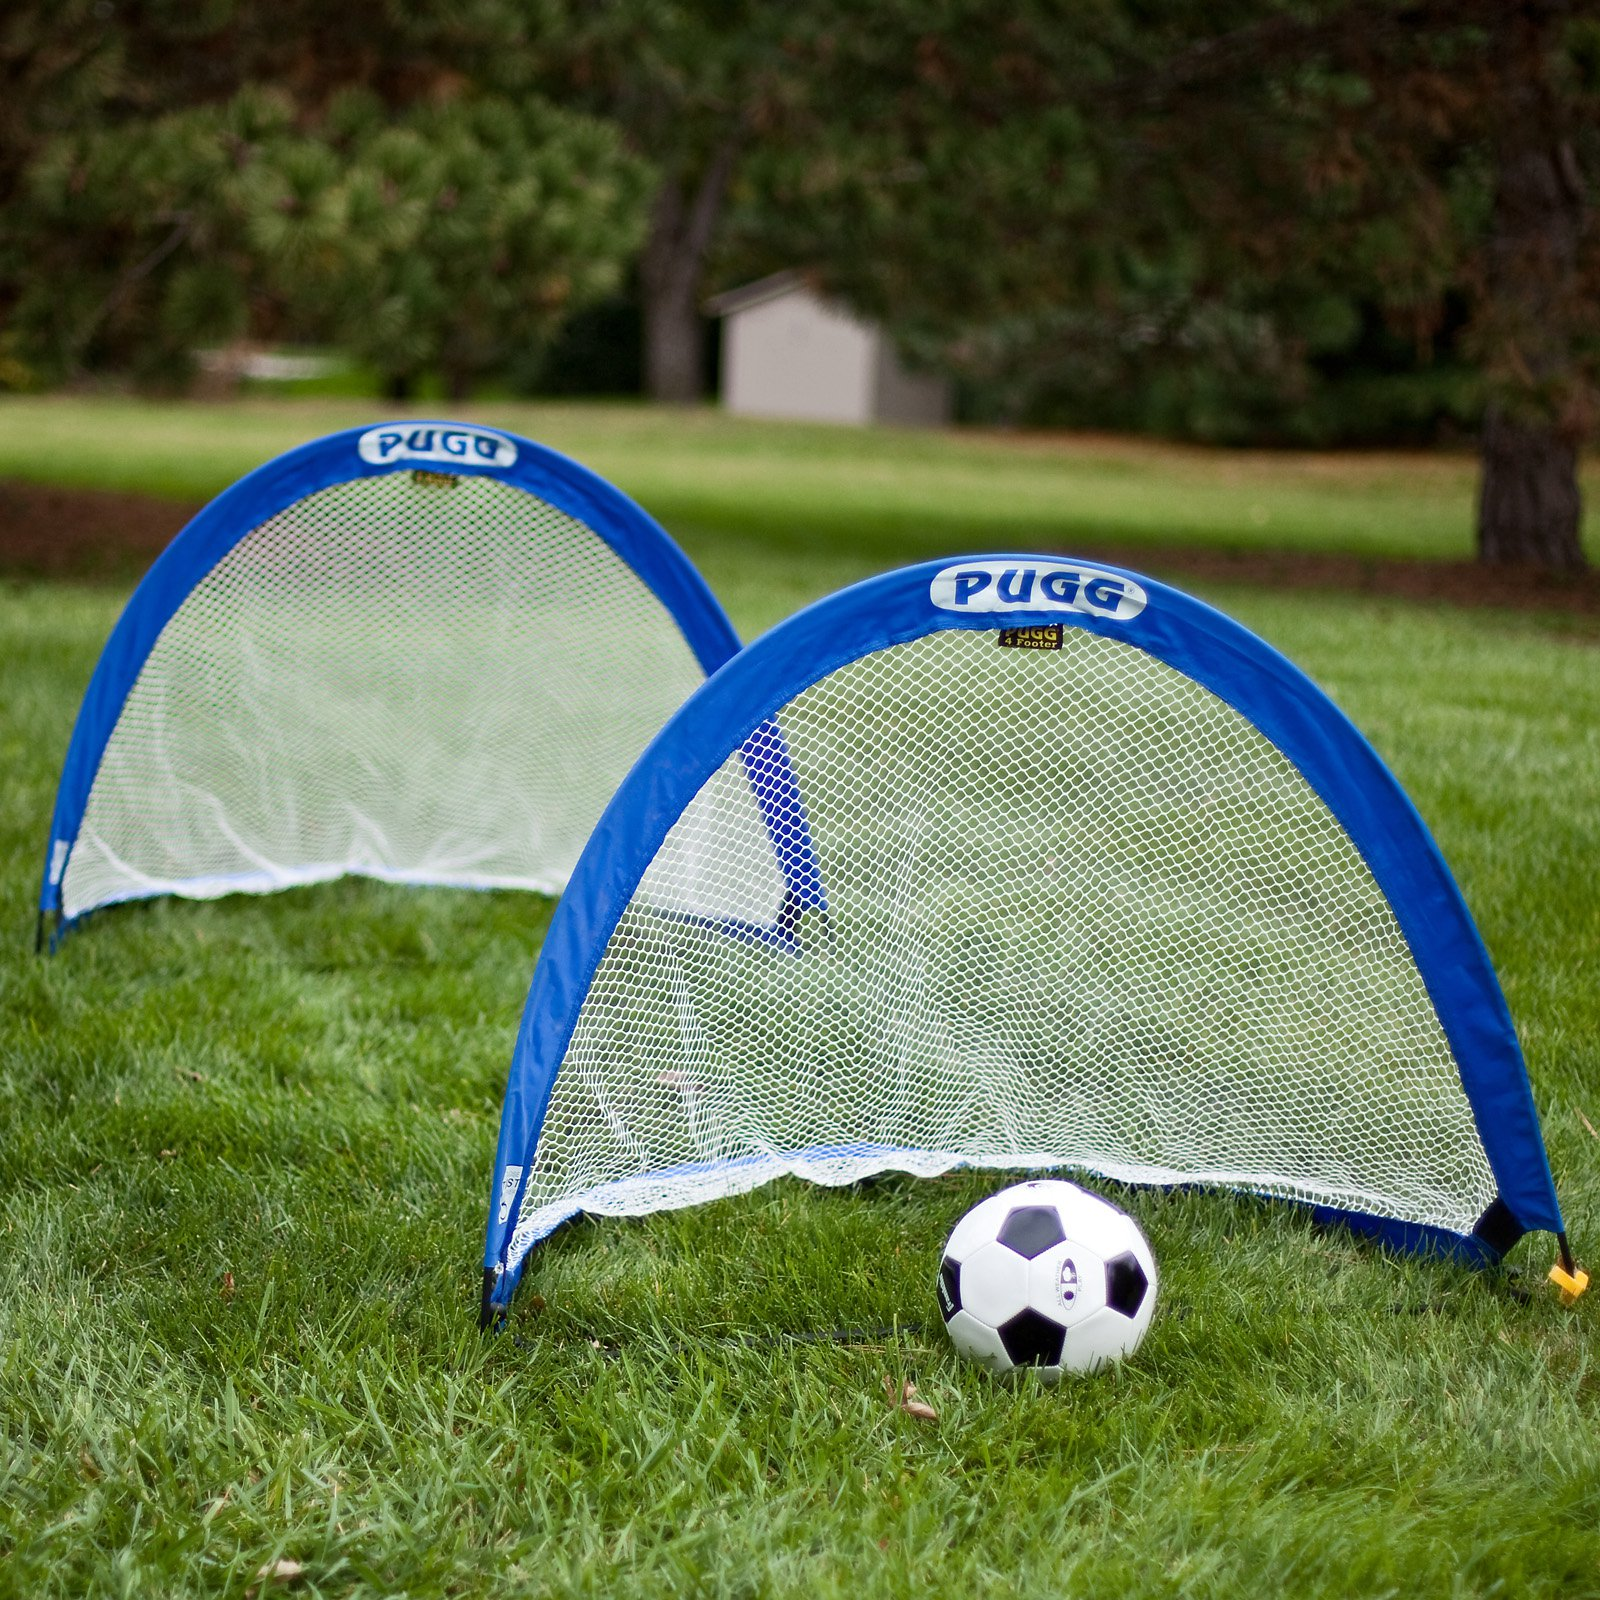 PUGG Classic 4 Foot Pop Up Soccer Goal Pair (Includes set of 2 goals and Carry Bag)